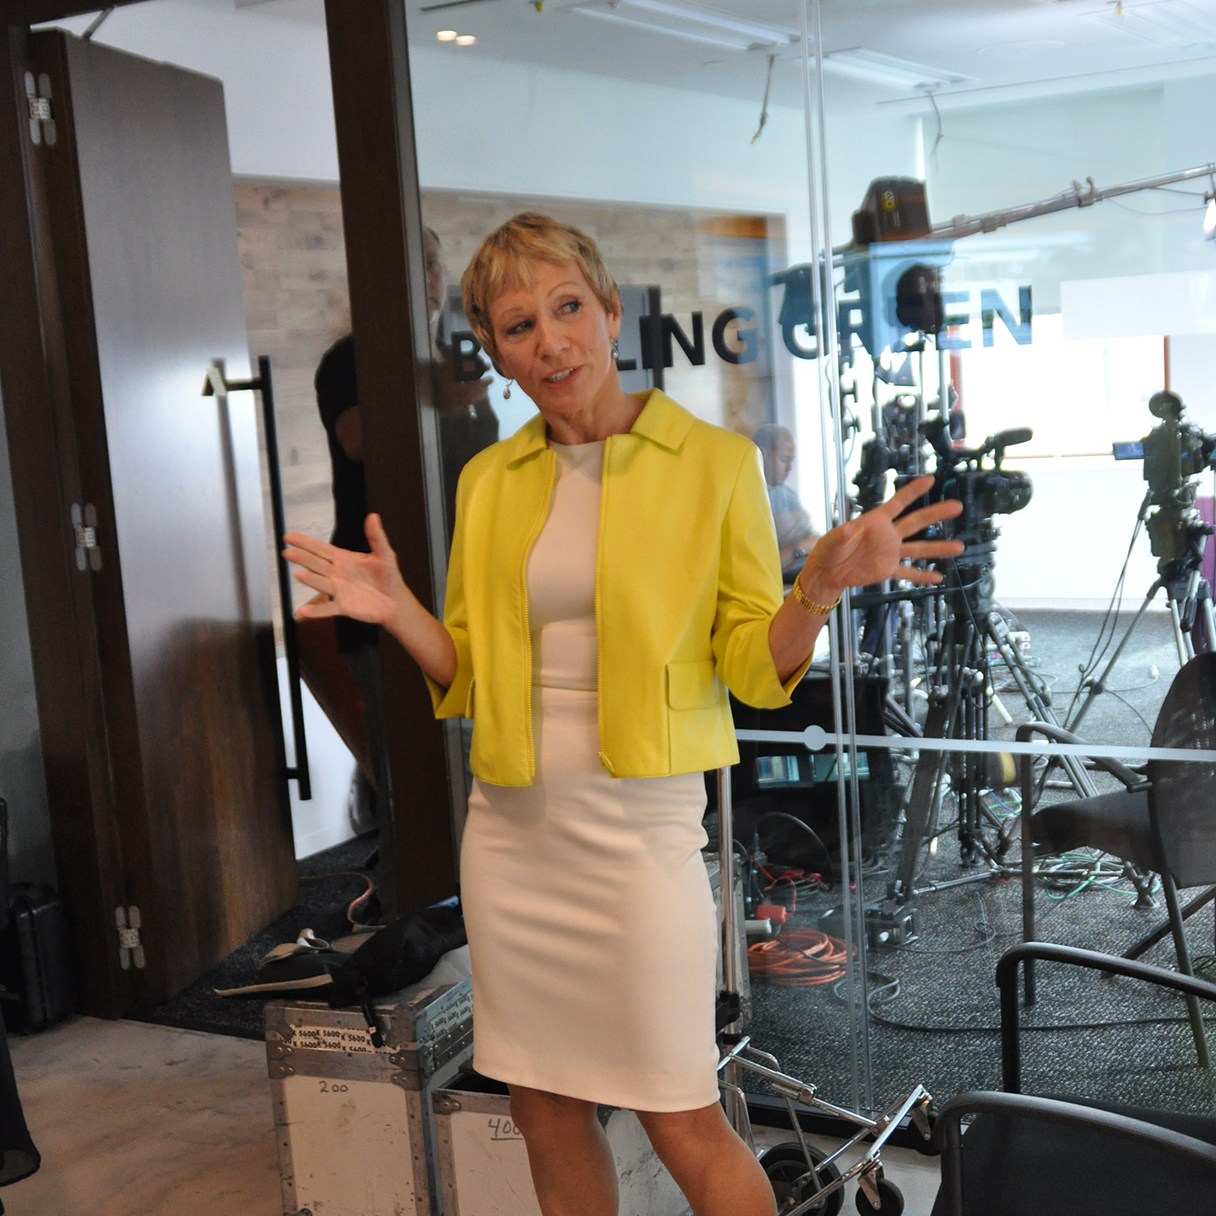 The 69-year old daughter of father (?) and mother(?) Barbara Corcoran in 2018 photo. Barbara Corcoran earned a  million dollar salary - leaving the net worth at 80 million in 2018